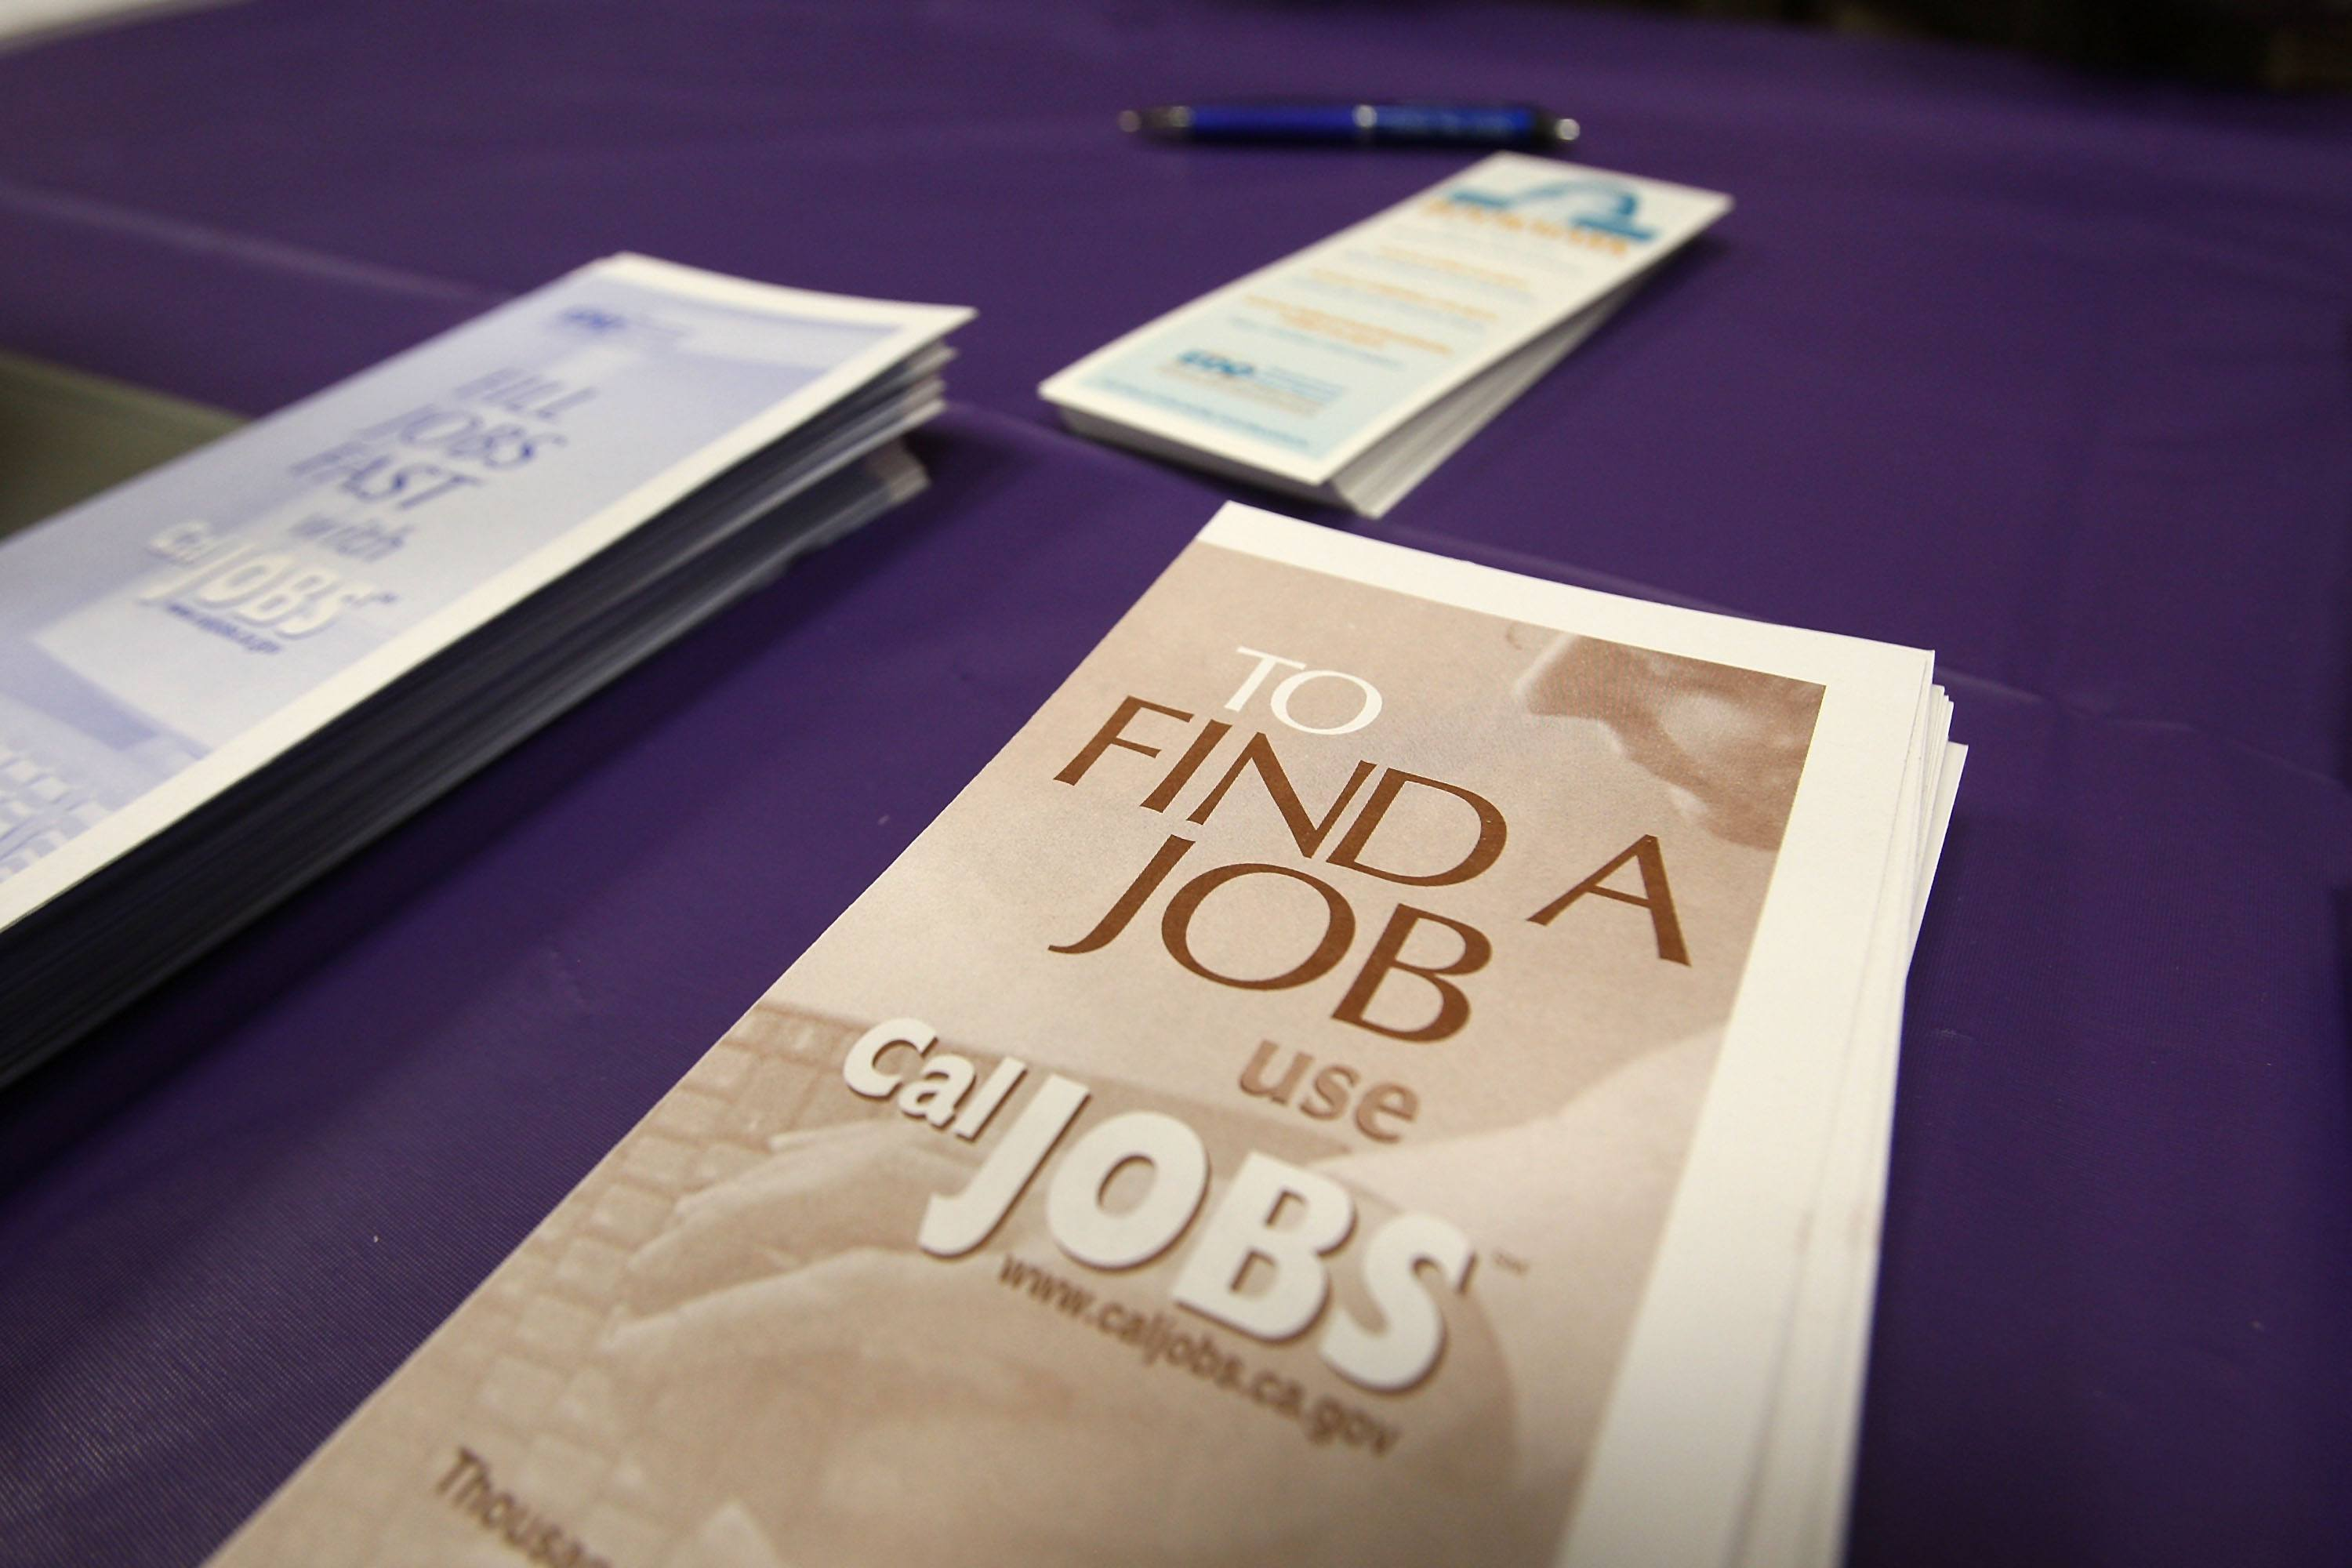 Pamphlets at a job fair